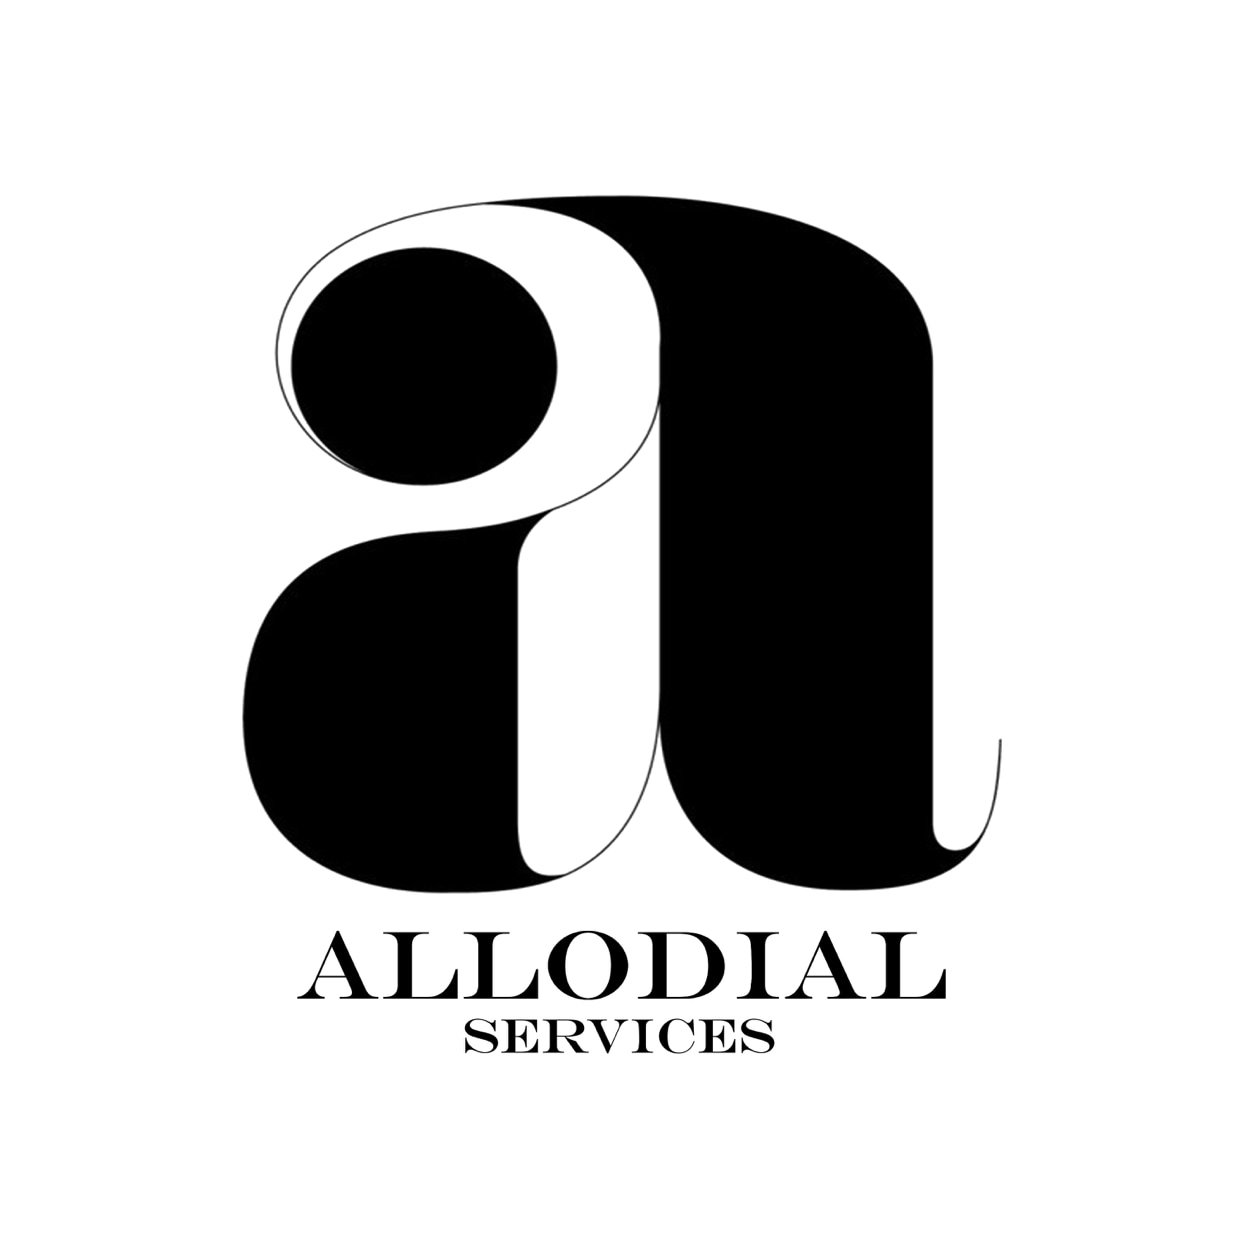 Allodial Services